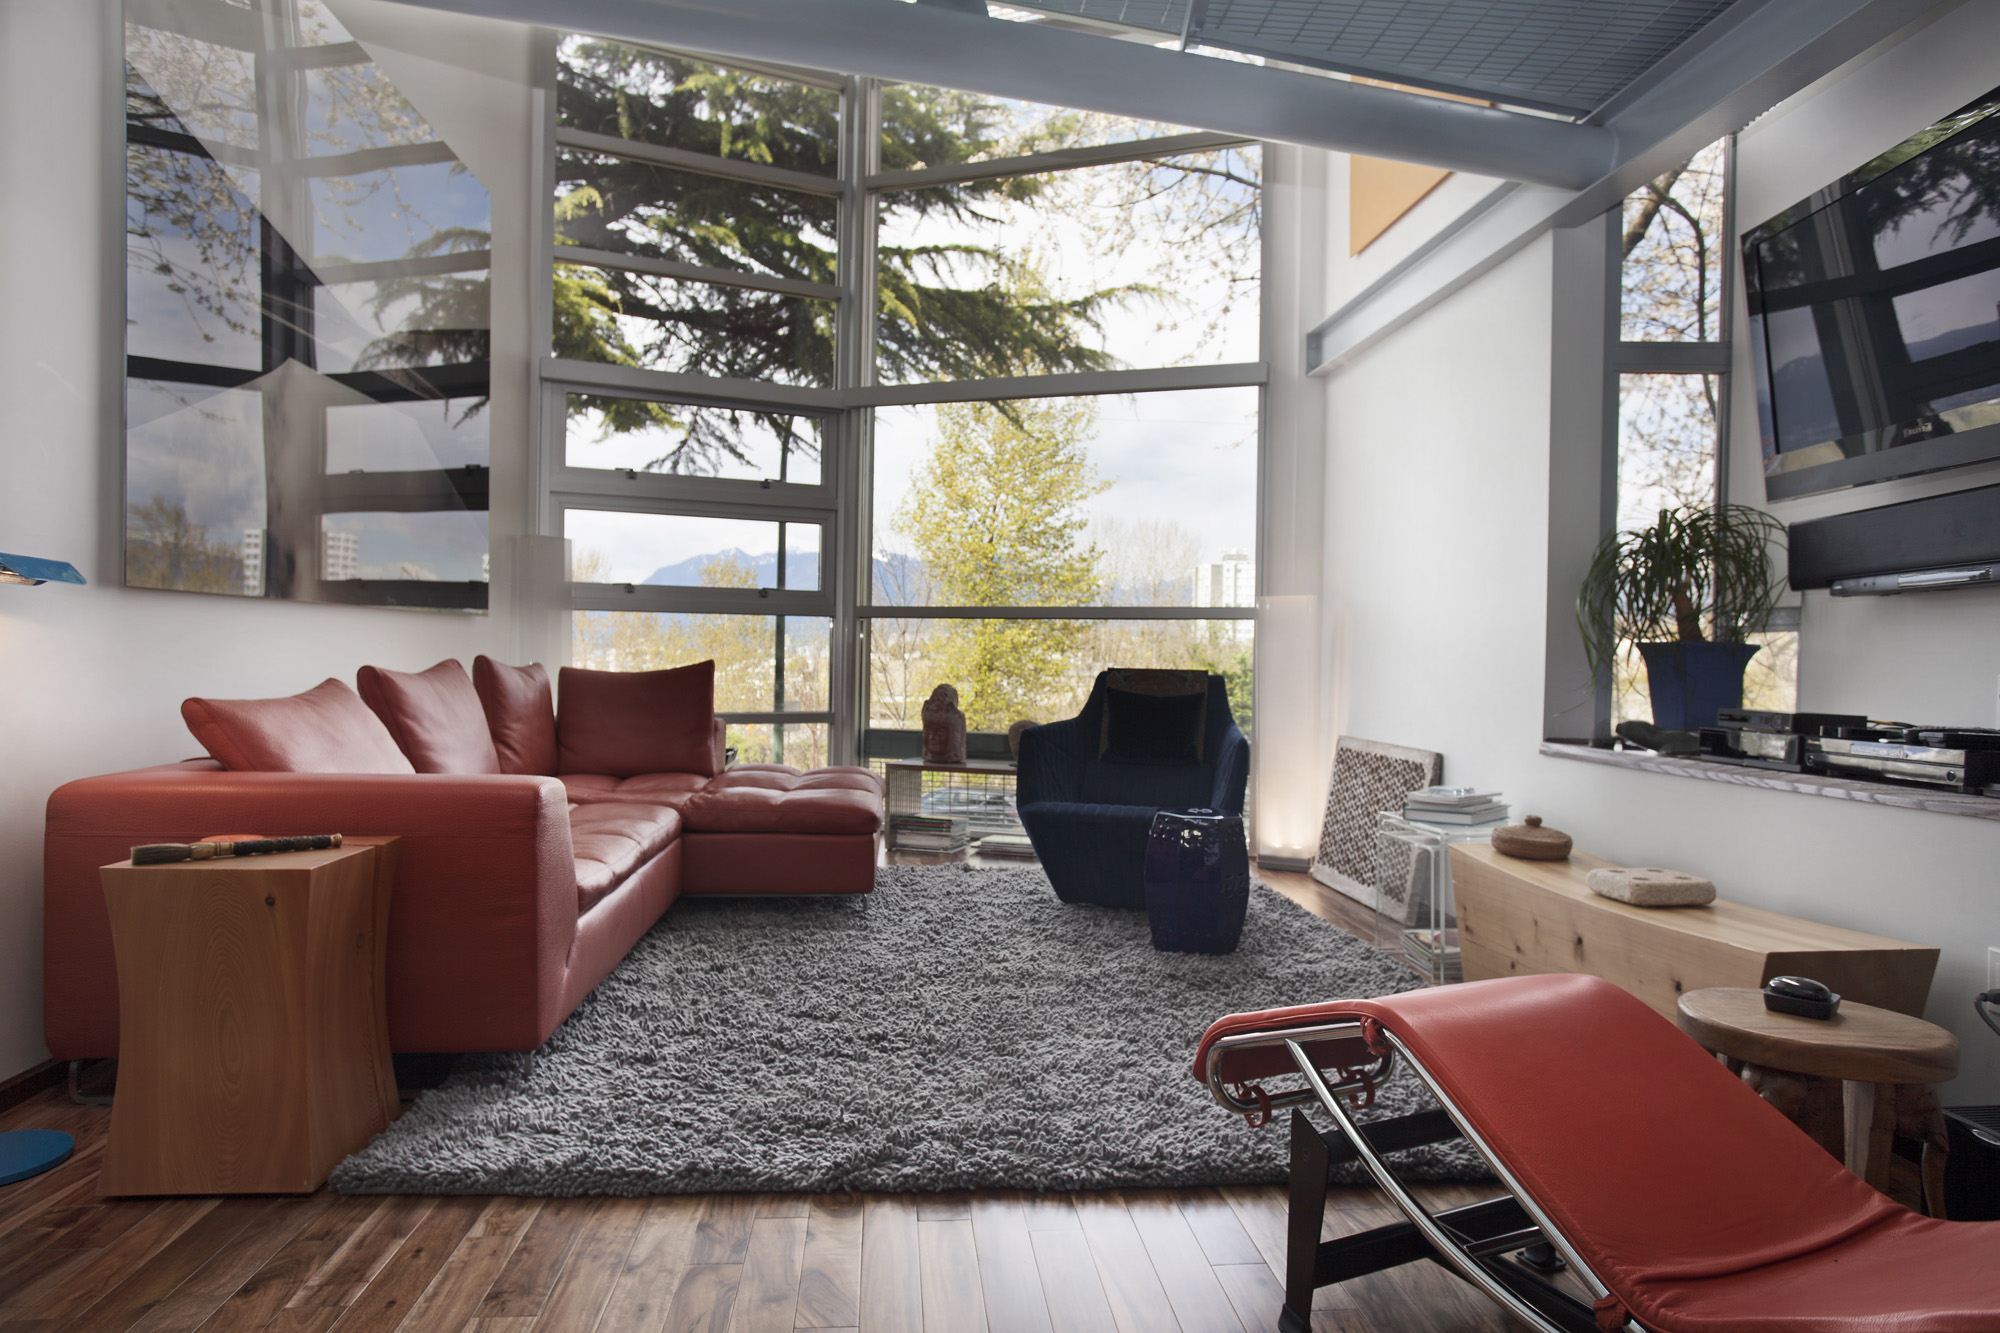 Modern Homes For Sale in Vancouver - Loft Style Duplex 1 living Room